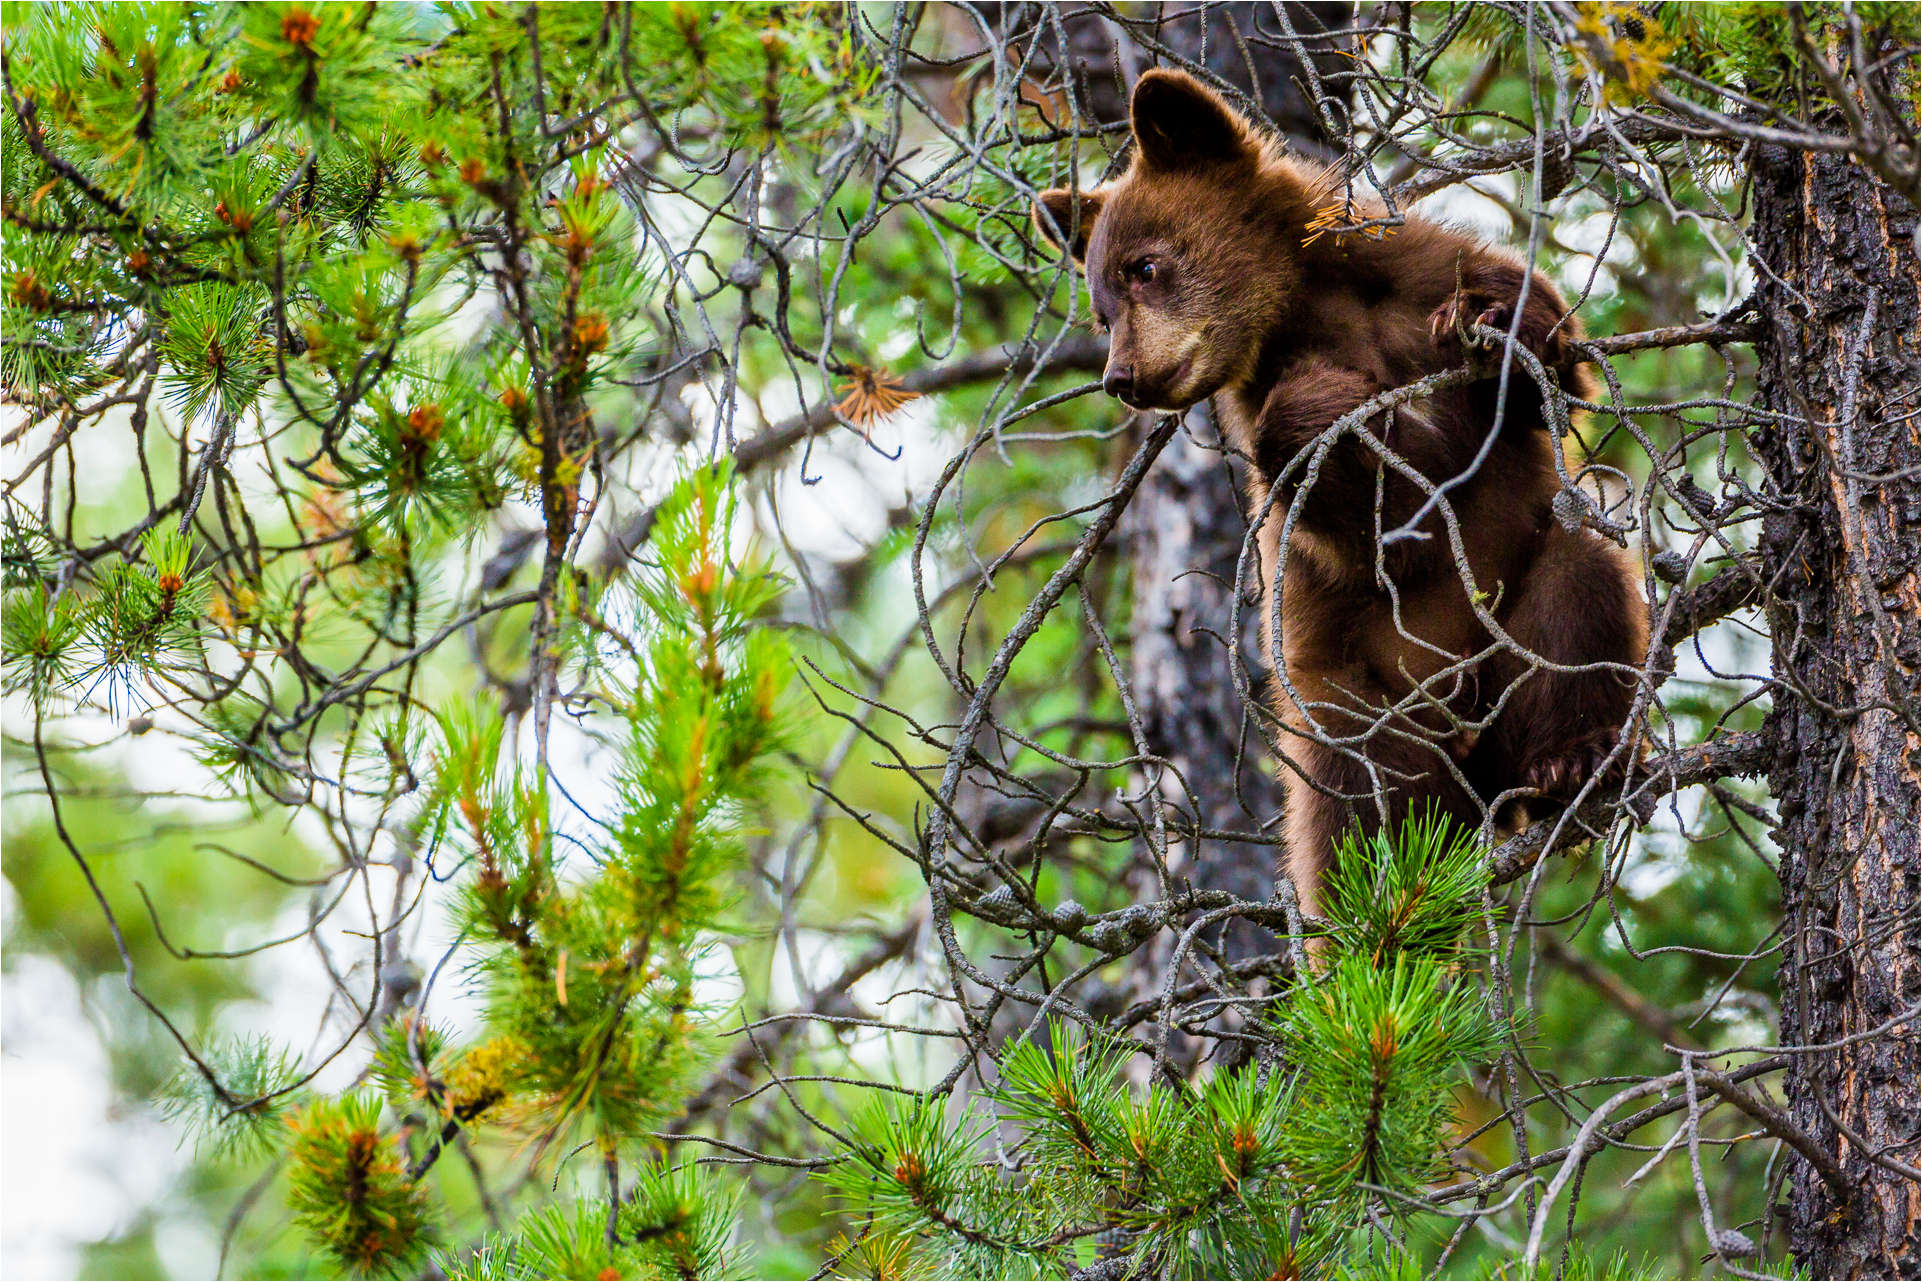 Cub scout - © Christopher Martin-3942